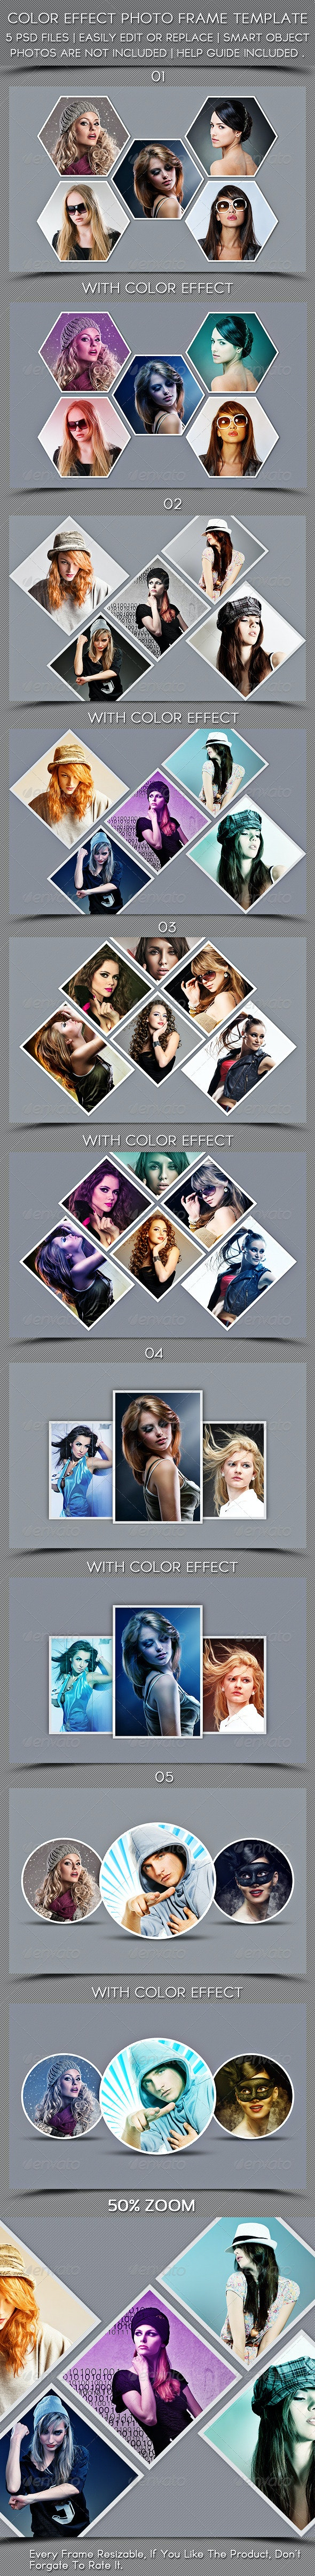 Color Effect Photo Frame Template - Photo Templates Graphics